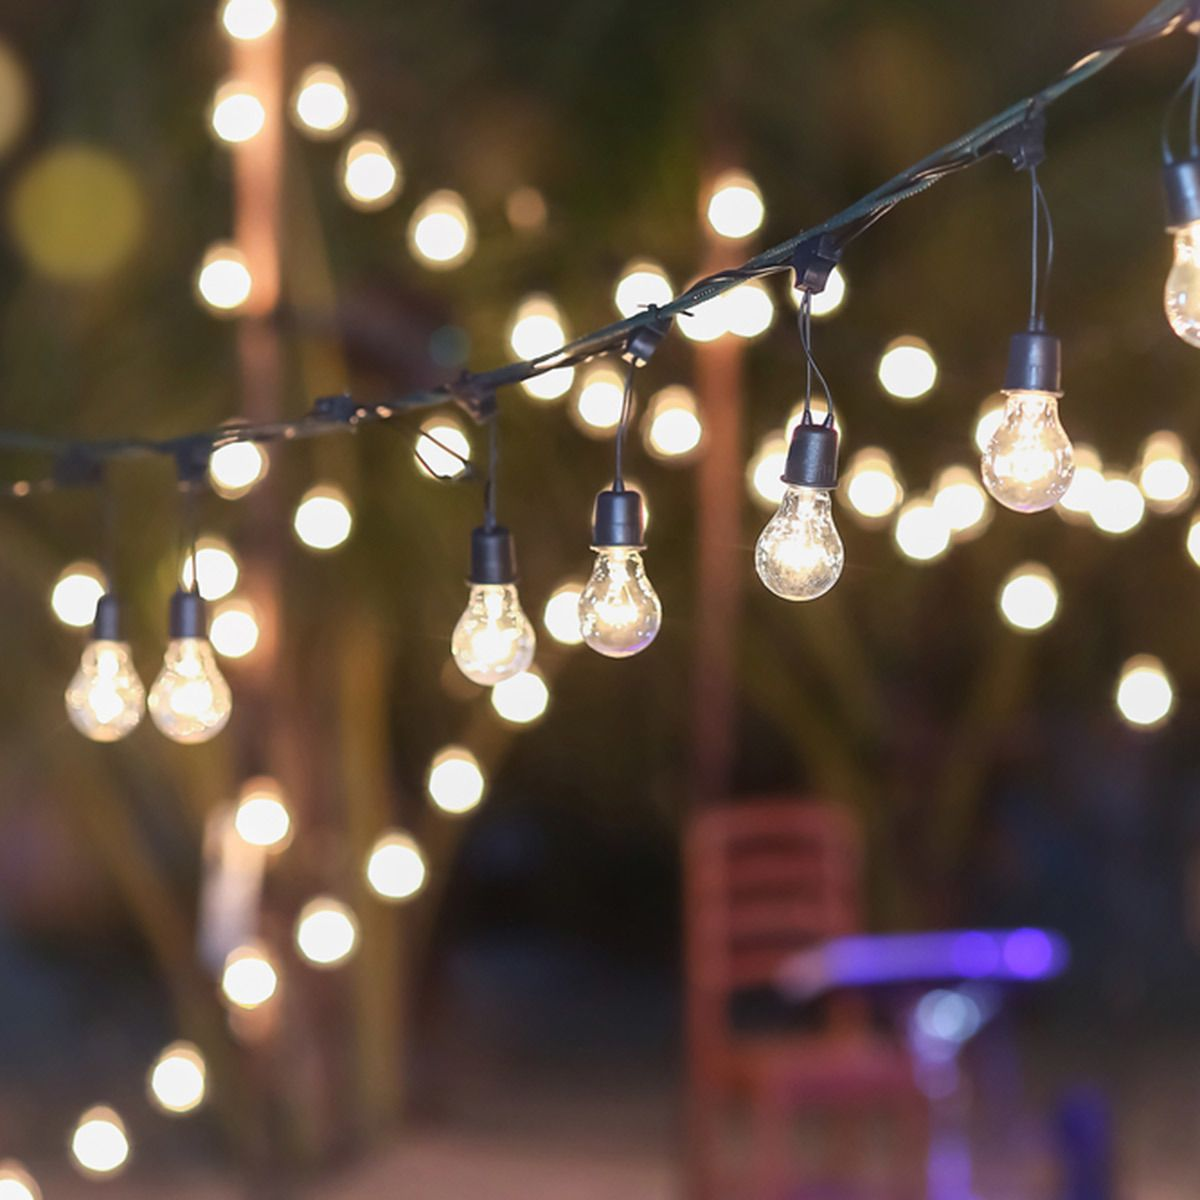 Garden String Lights Inspiration 15 Ideas For Outdoor String Lights That Will Make You Want To Live